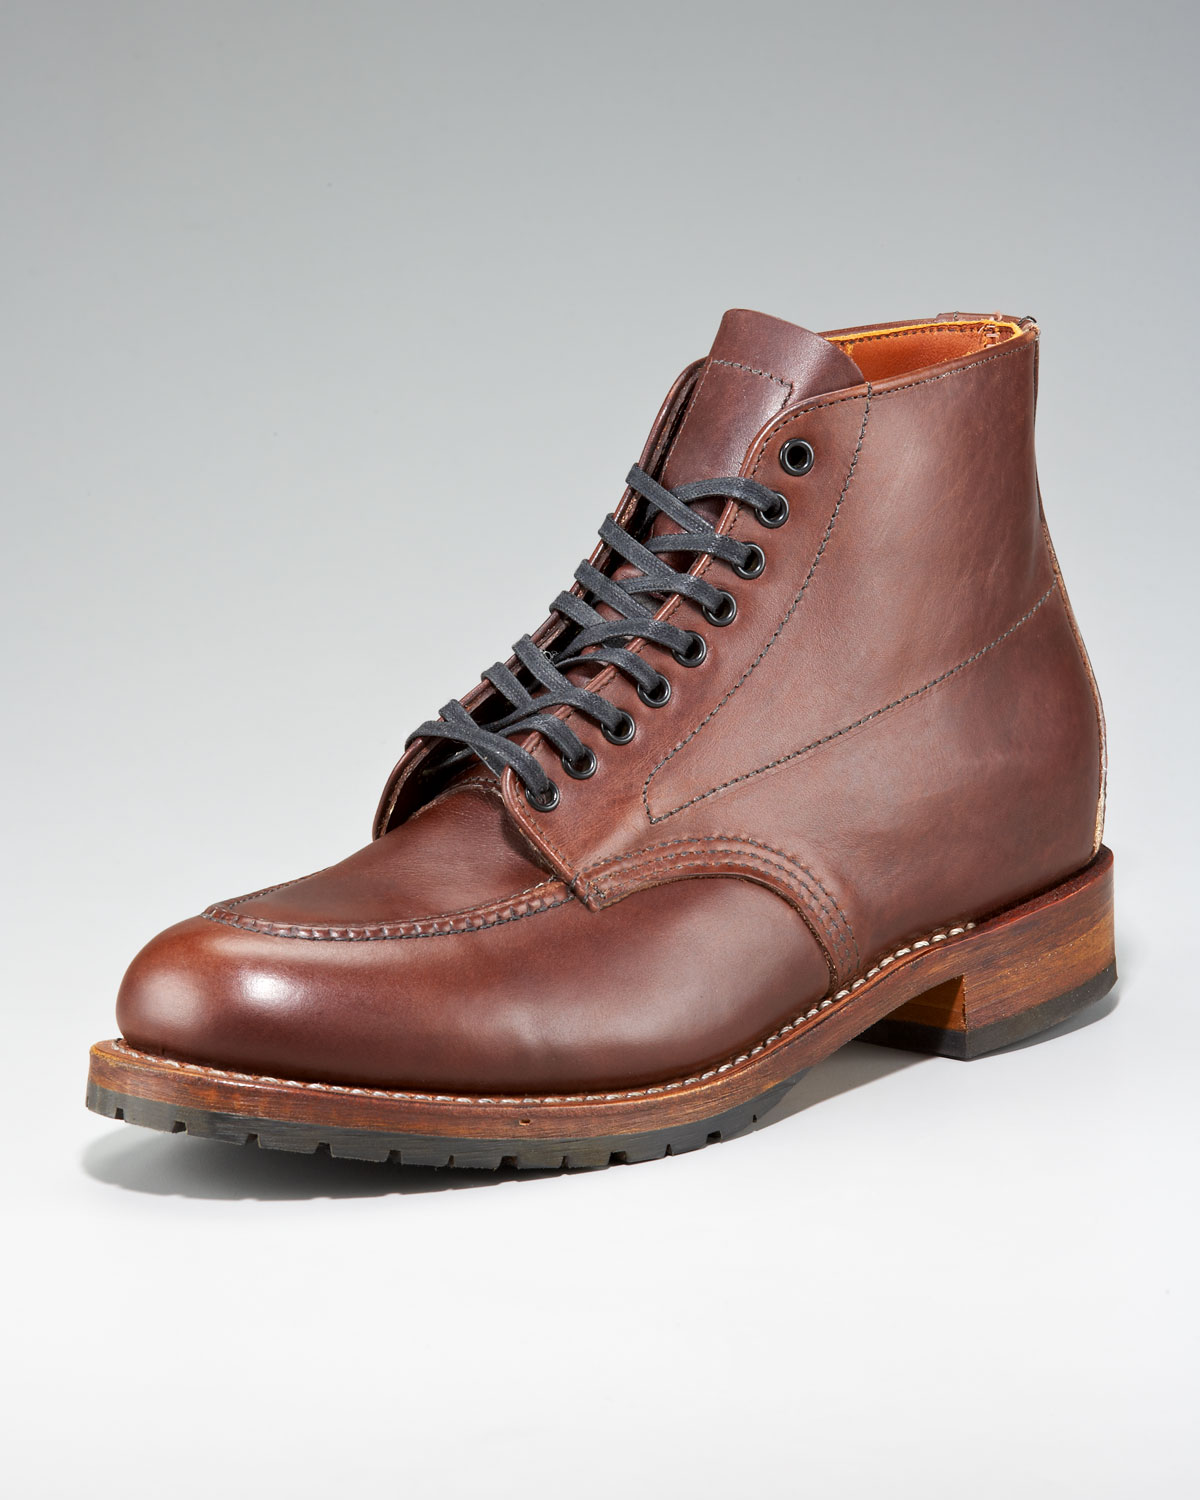 Red Wing Boots On Sale KM60Lskz